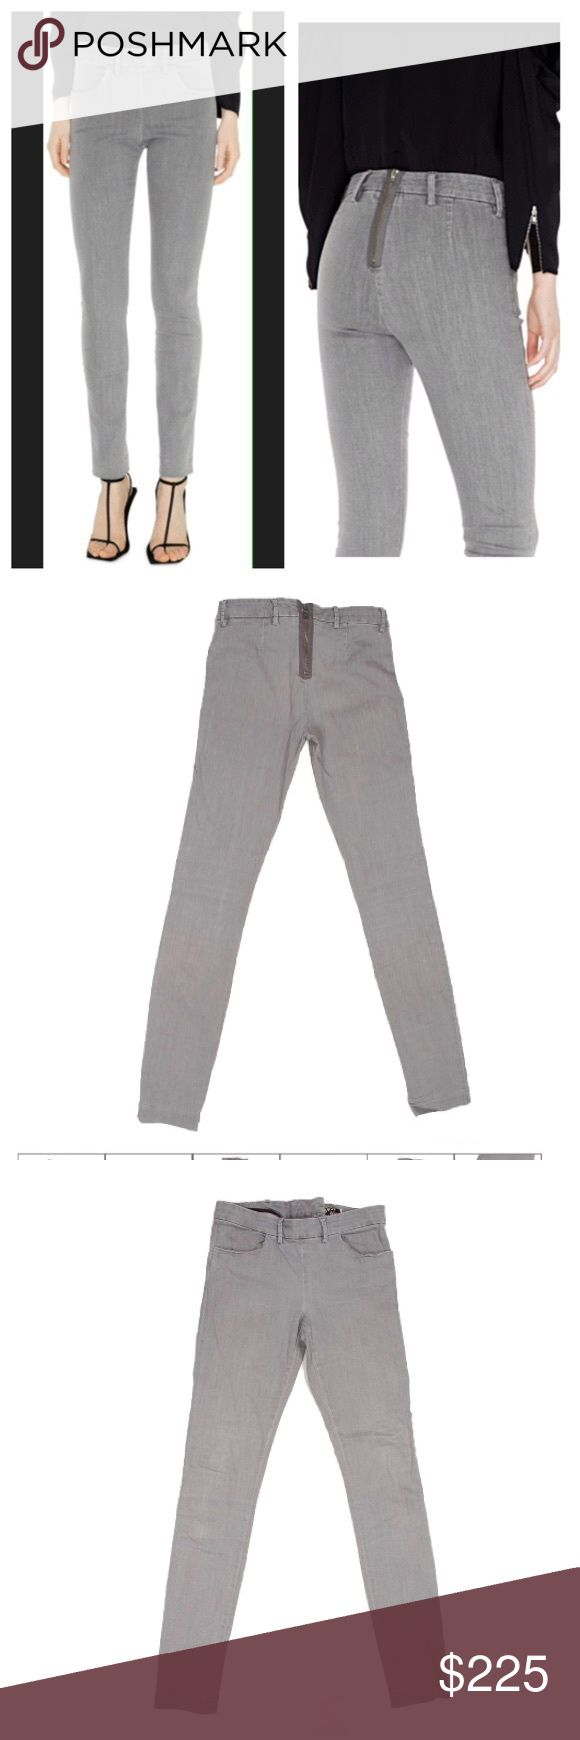 ACNE SKIN ZIPPER JEANS ACNE STUDIOS SKIN GREY SLIM-SKINNY FIT WOMEN JEANS  100% Authentic Tag Size: 28/34 Condition: good (Evaluation - 8/10)  Color: grey Material: 92% cotton, 5% PES and 0.03% lycra.  ACUAL MEASUREMENTS (Taken by Tape Item Laid Flat)  WAIST from side to side: 37 cm or 14 1/2'' TOTAL LENGTH from waist to the leg opening: 104 cm or 41'' LEG OPENING from side to side: 14 cm or 5 1/2'' INSEAM from crotch down to the leg opening: 83 cm or 32 3/4'' Acne Jeans Skinny